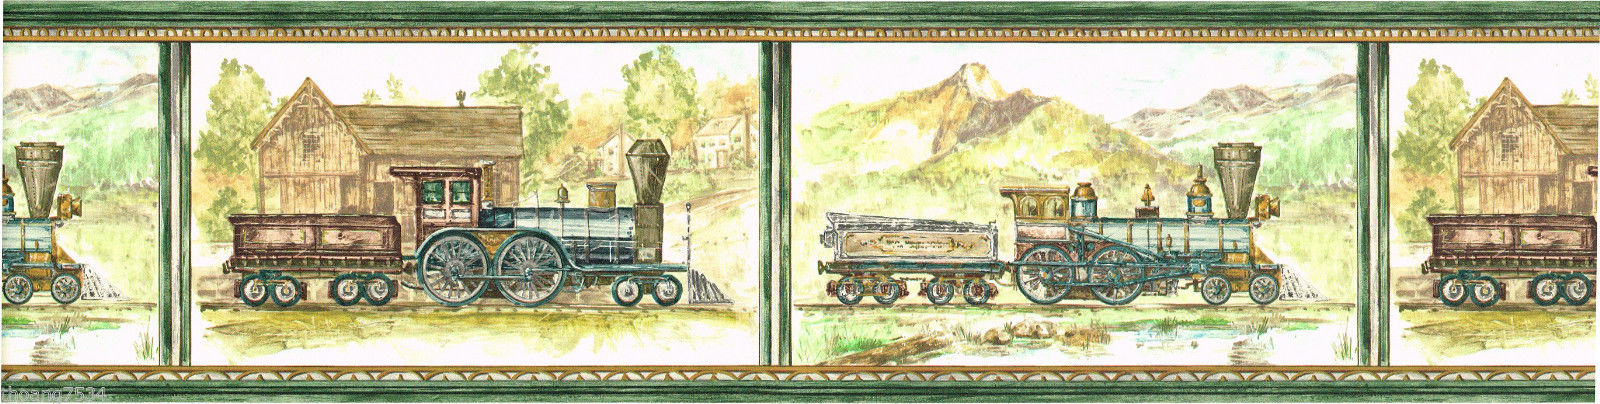 Vintage Antique Locomotive Steam Engine Train Scenic Green  57jpg 1600x404